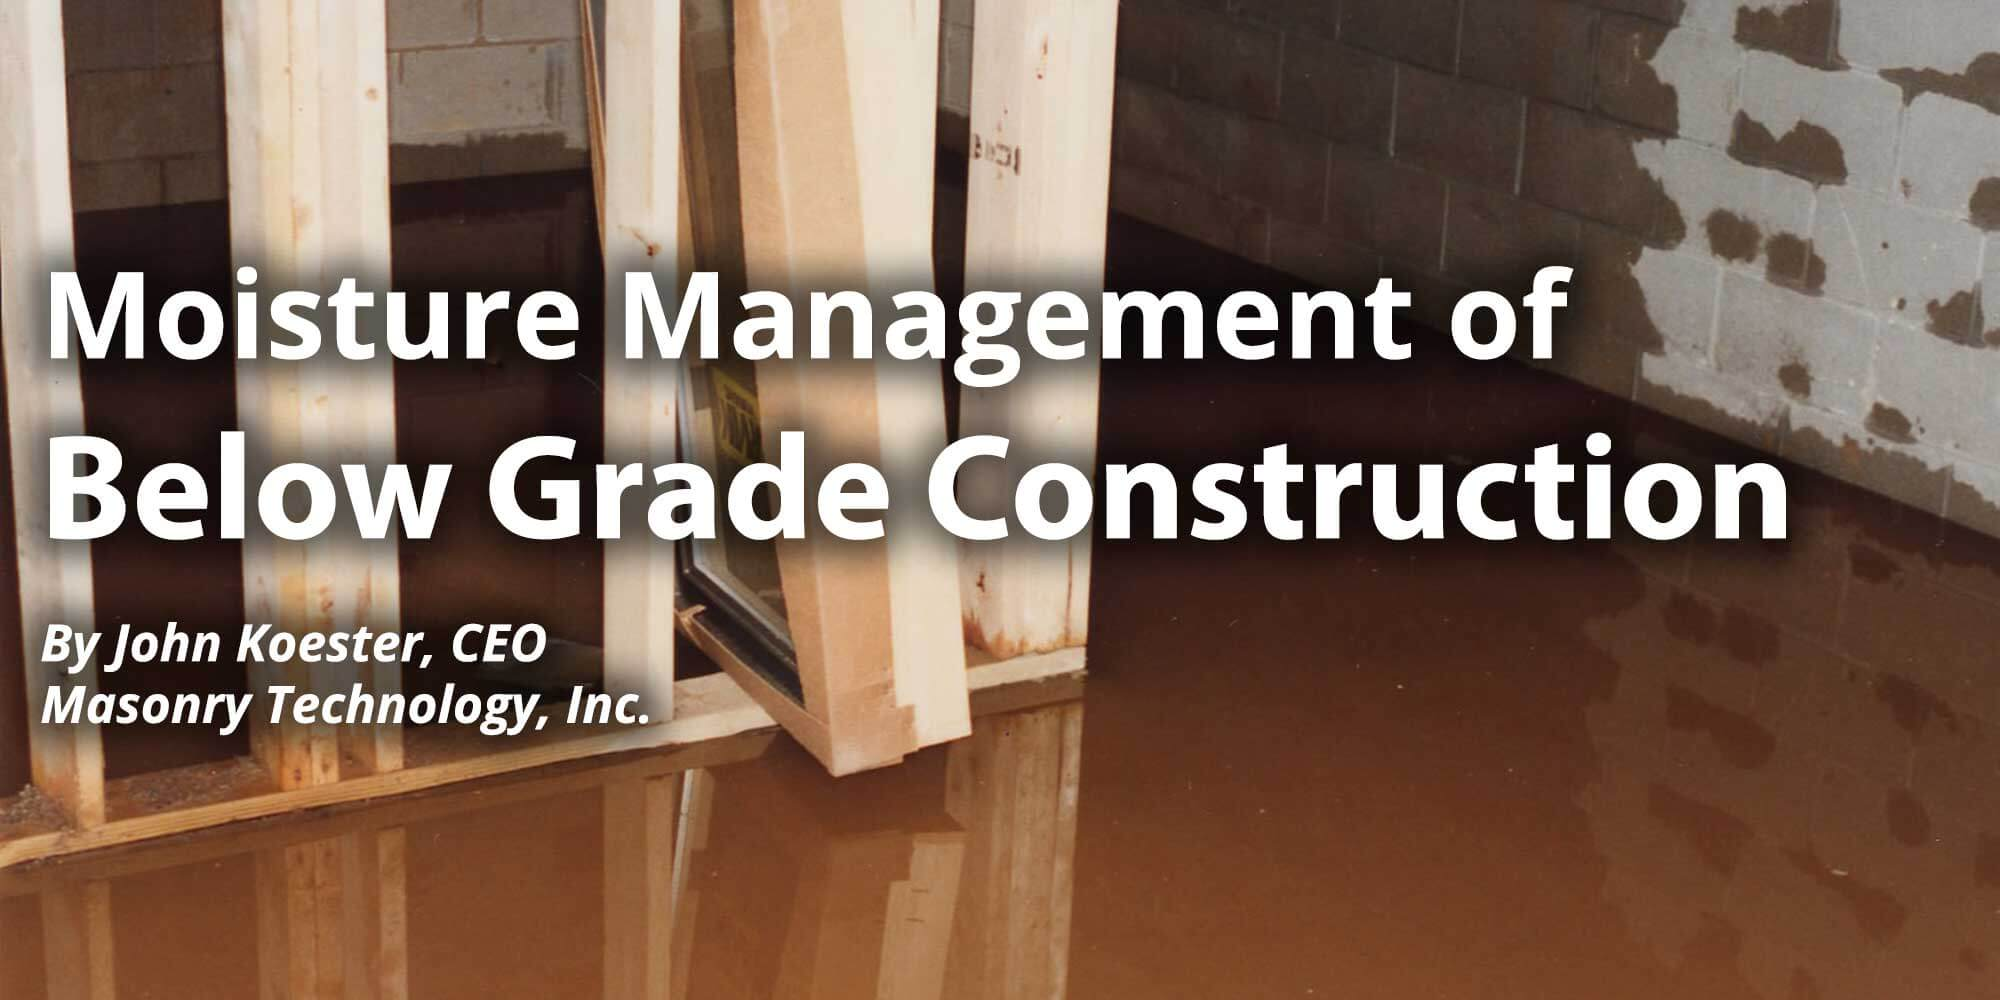 Moisture Management of Below Grade Construction